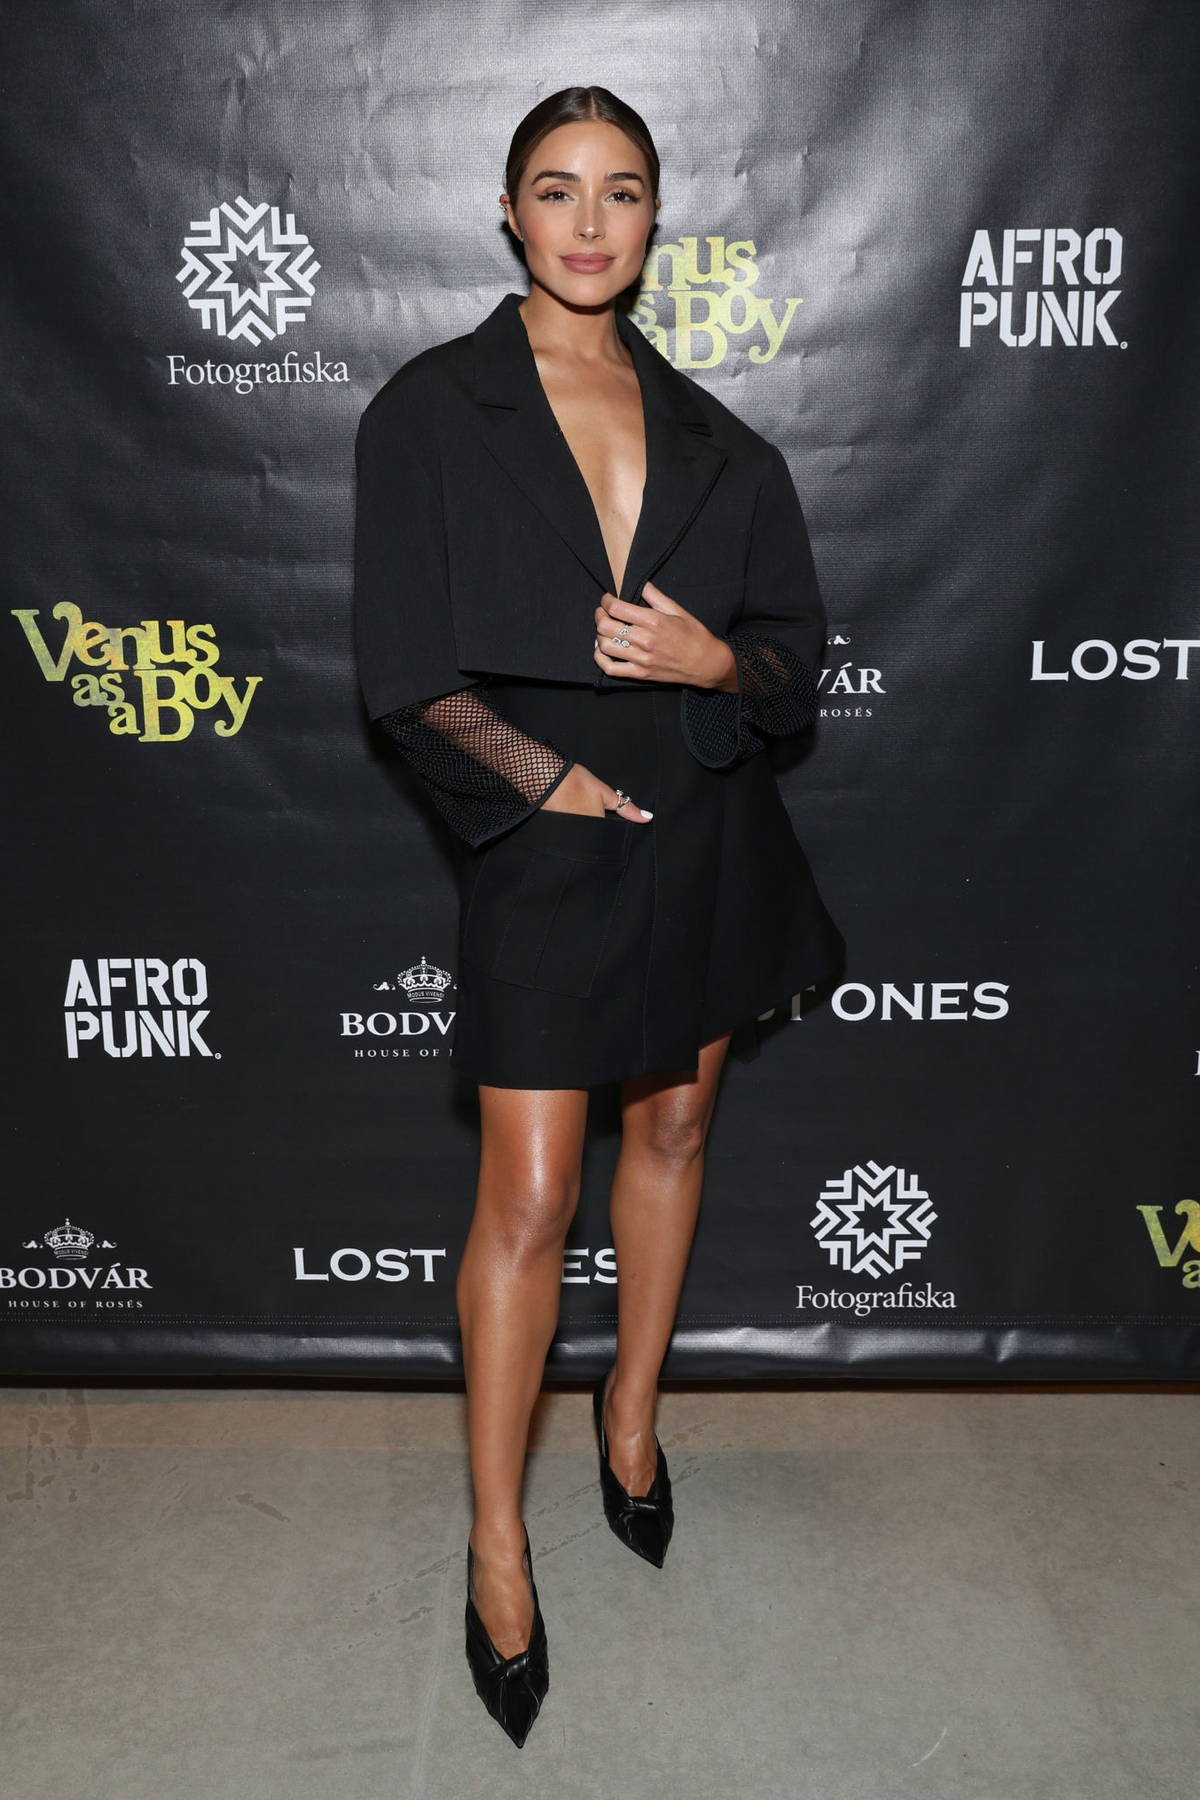 Olivia Culpo attends the World Premiere of 'Venus as a Boy' during the 2021 Tribeca Film Festival in New York City